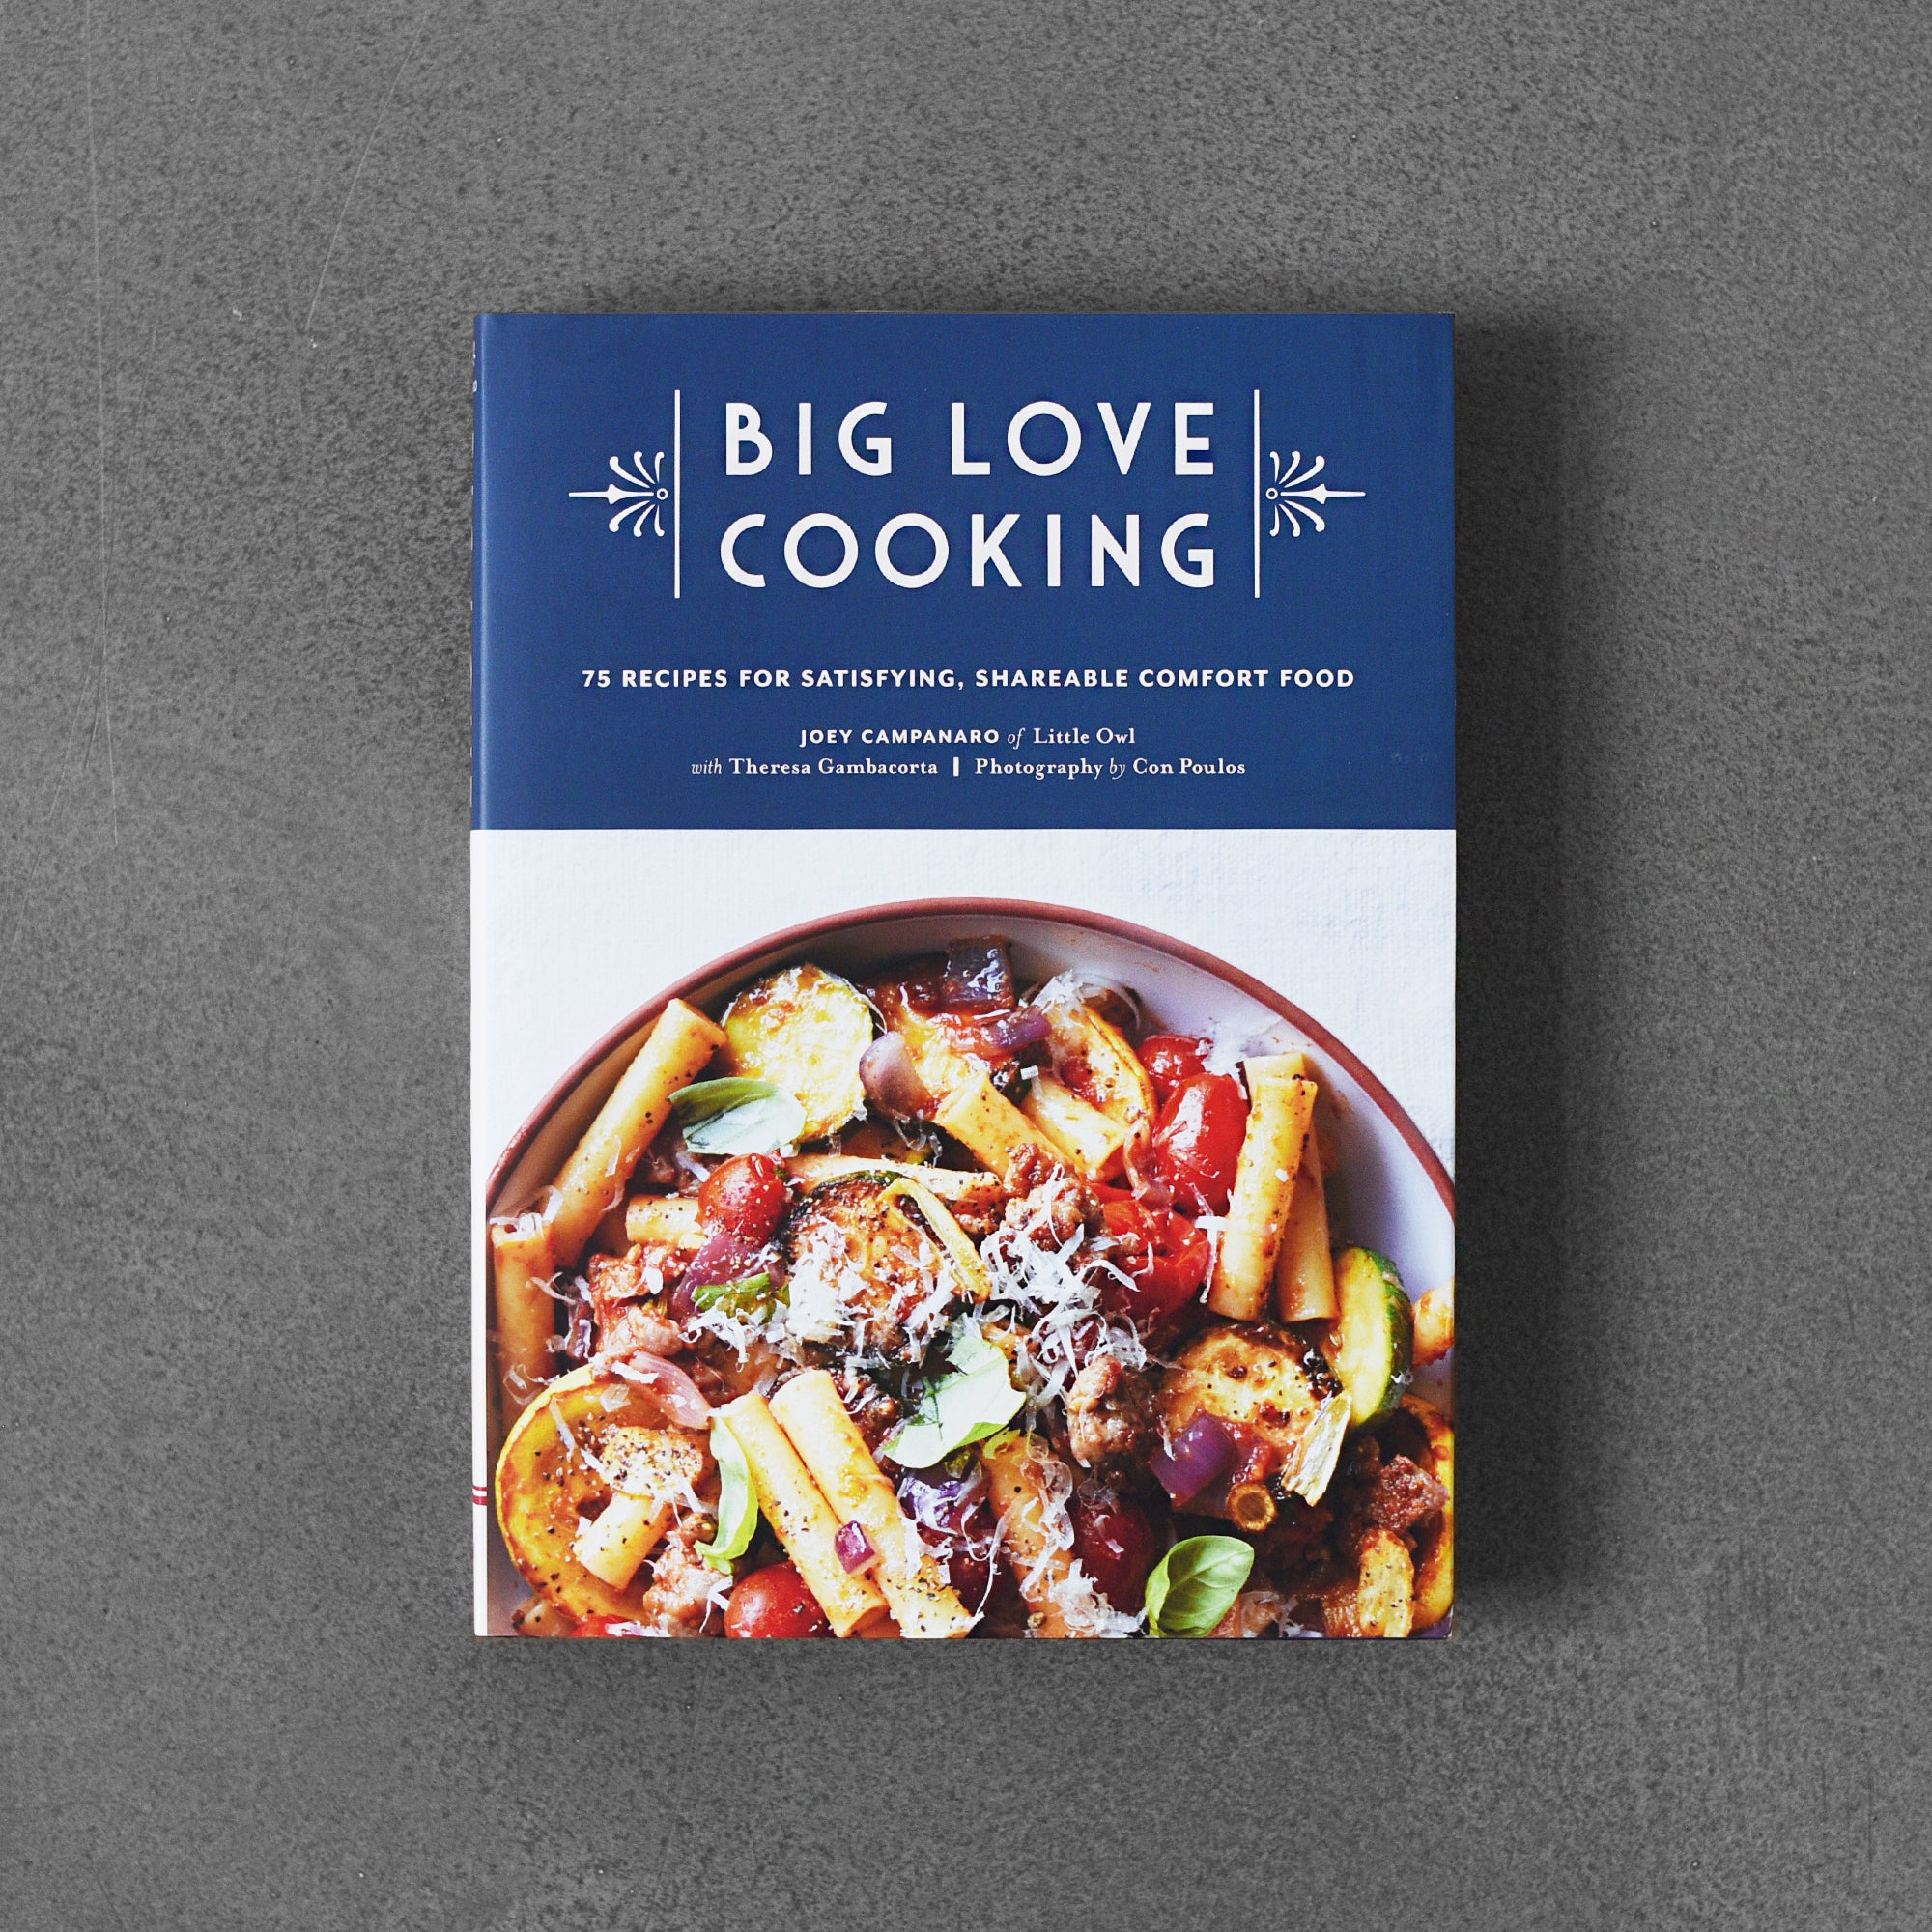 Big Love Cooking: 75 Recipes for Satisfying, Shareable Comfort Food